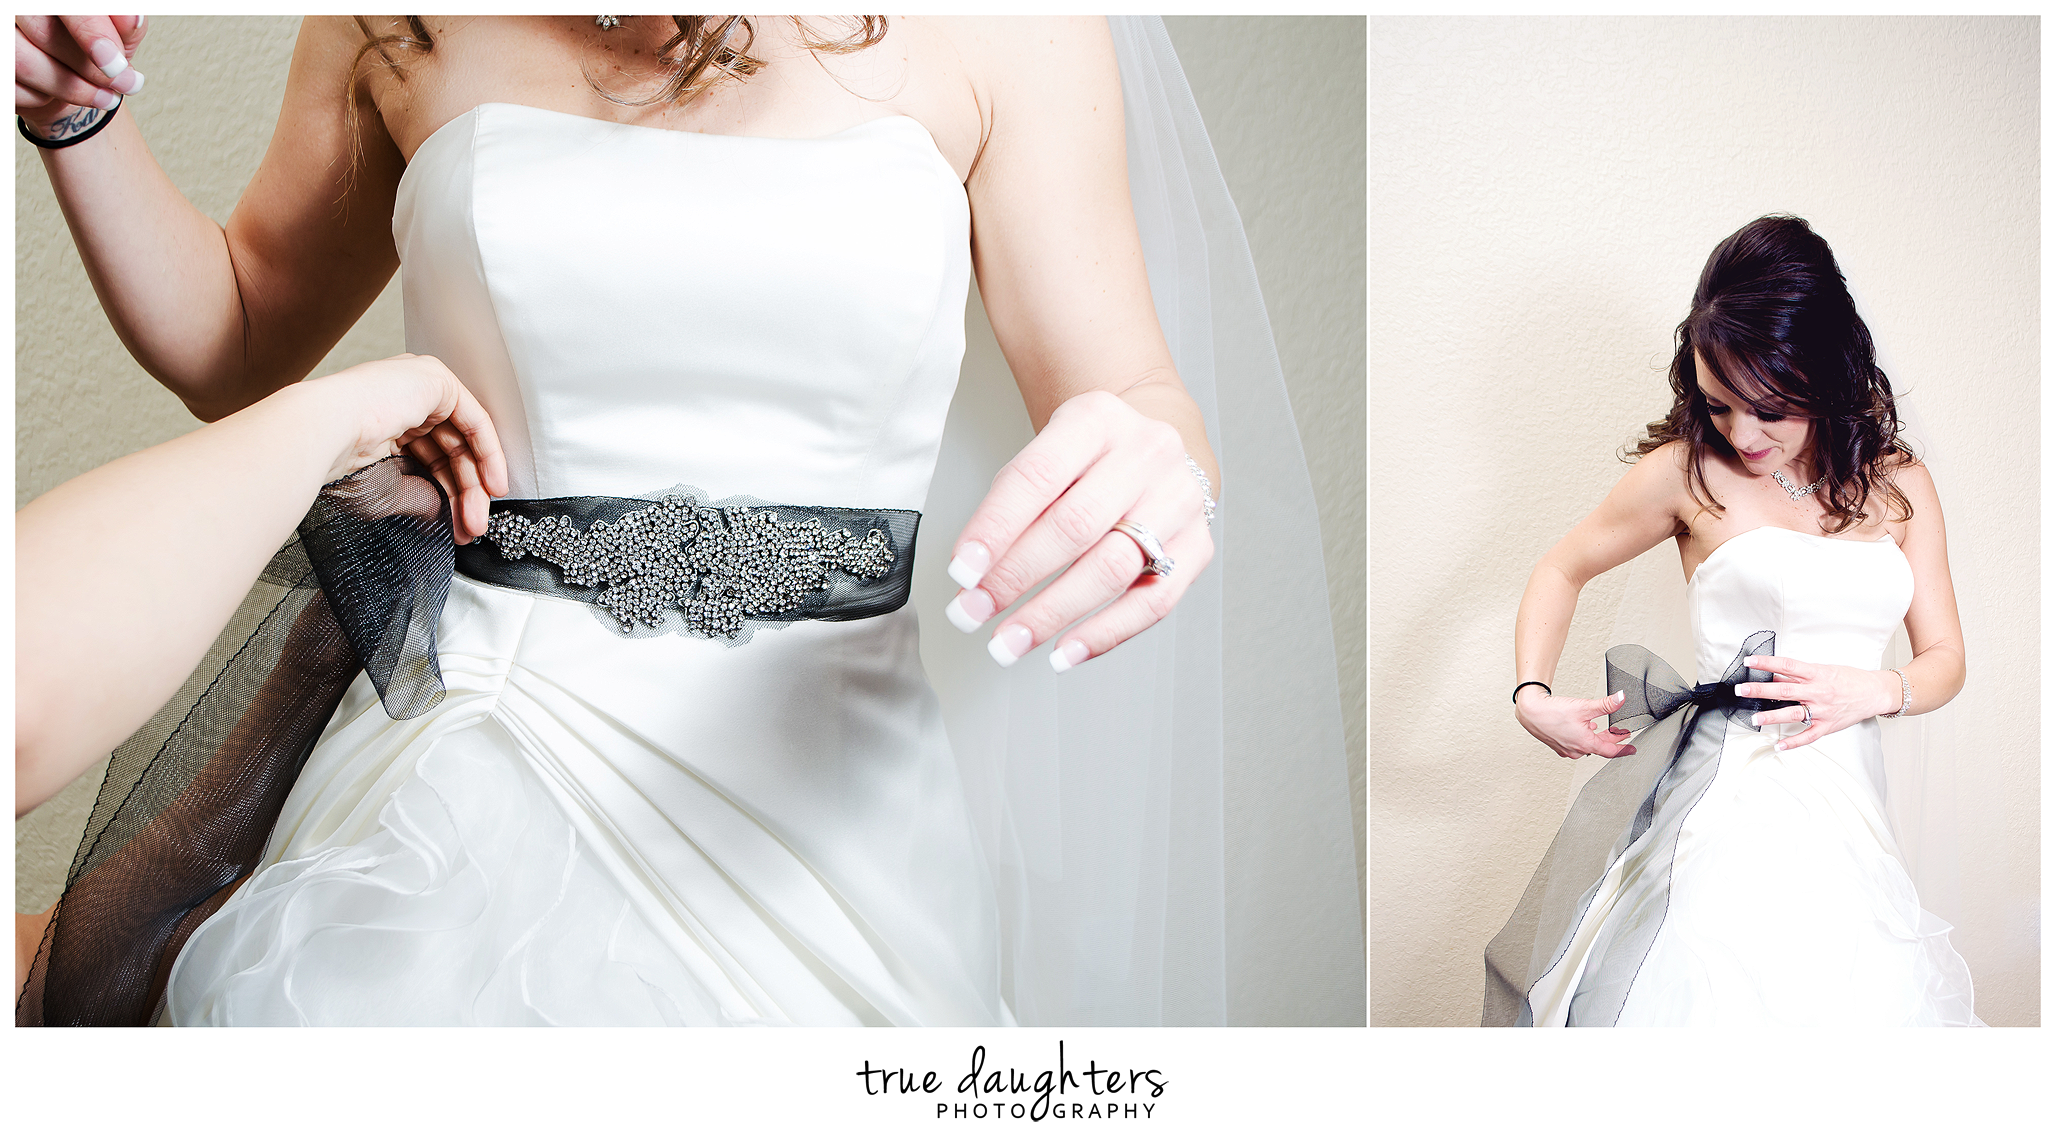 True_Daughters_Photography_Campitelli_Wedding-5.png